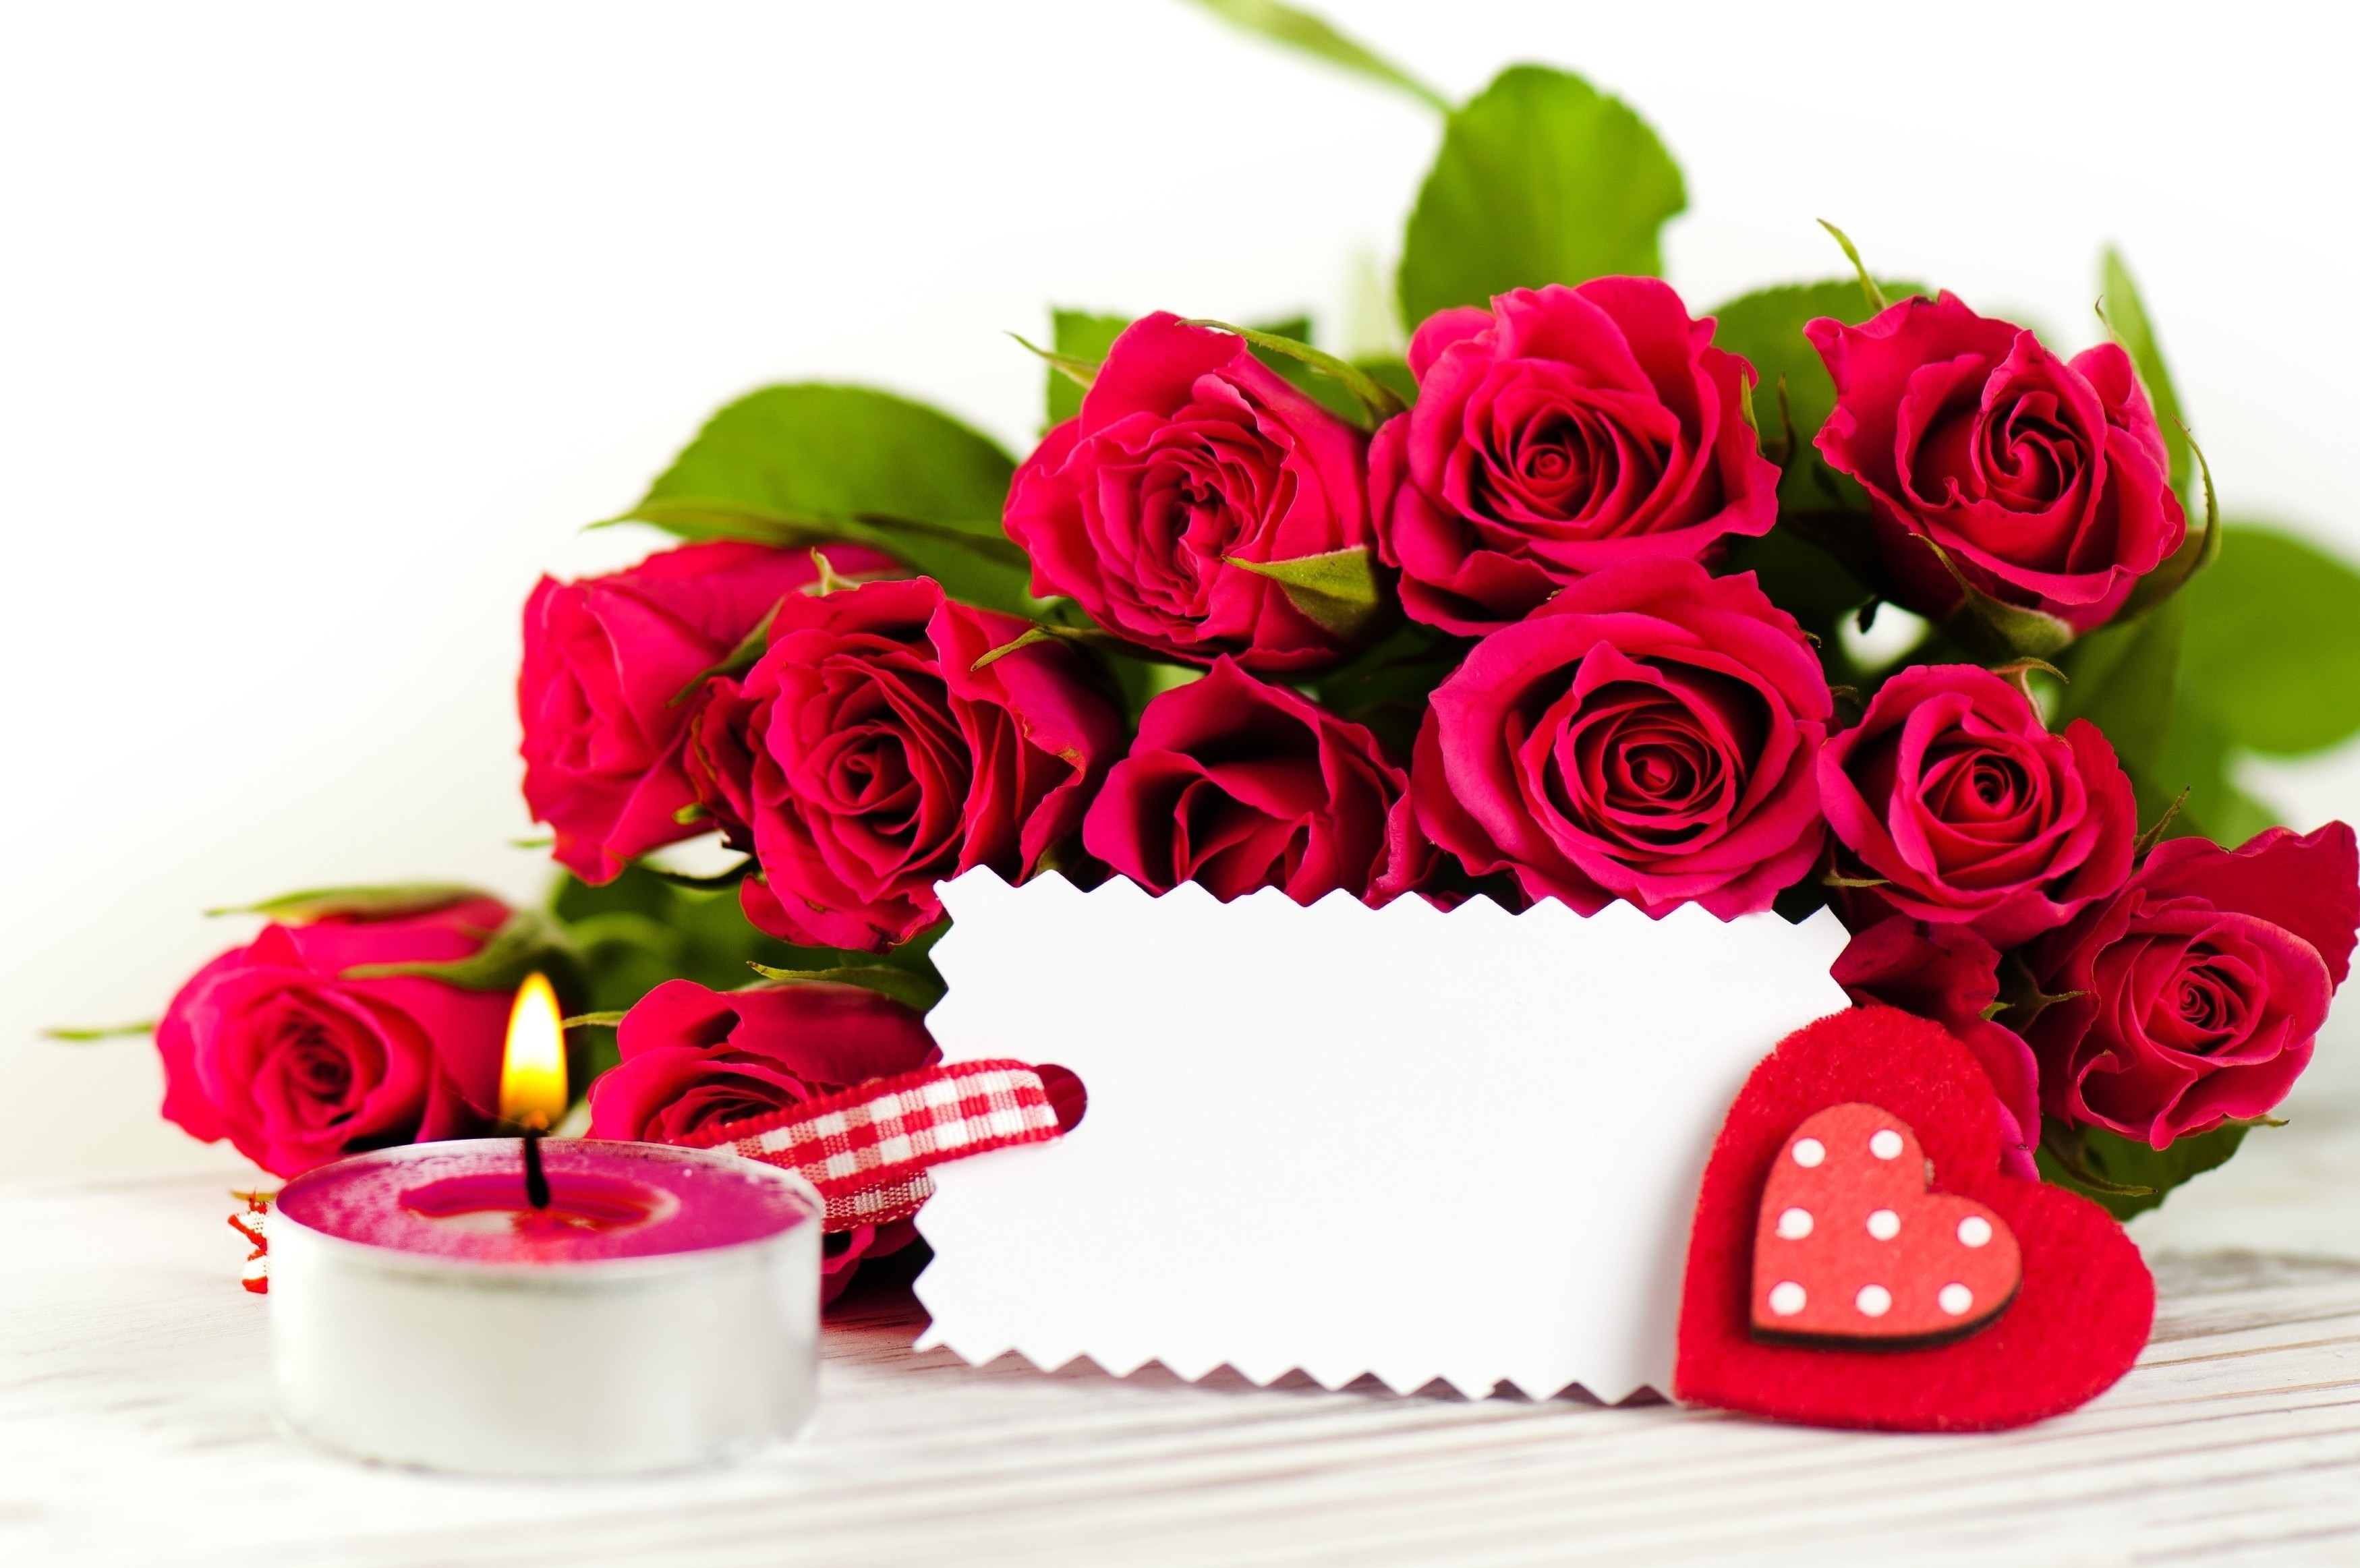 Wallpaper valentine 39 s day february 14 flowers roses - Valentine s day flower wallpaper ...